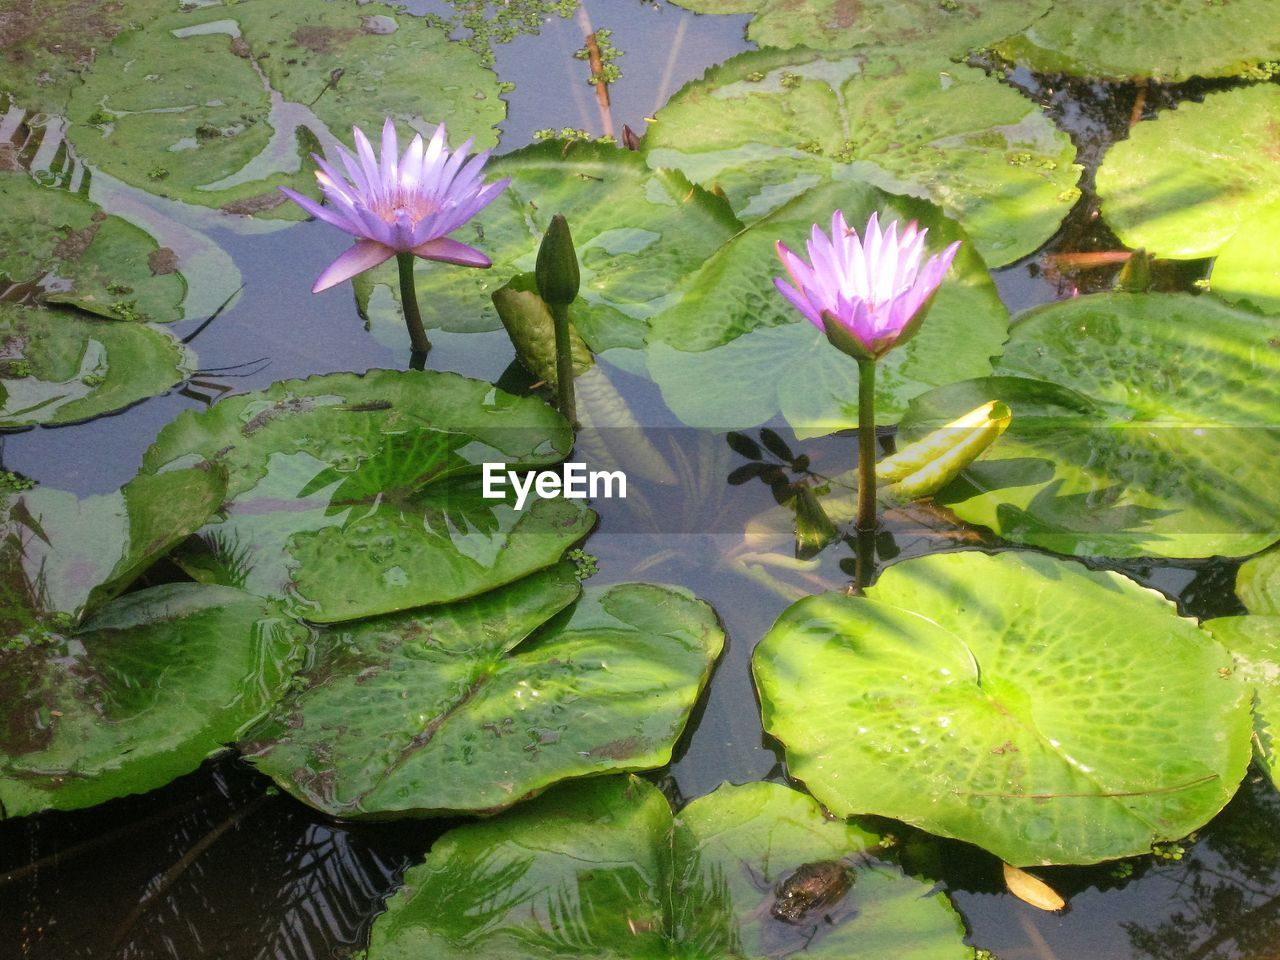 leaf, flower, water lily, pond, growth, lotus water lily, nature, water, freshness, floating on water, beauty in nature, petal, plant, no people, fragility, lily pad, green color, outdoors, day, flower head, close-up, lotus